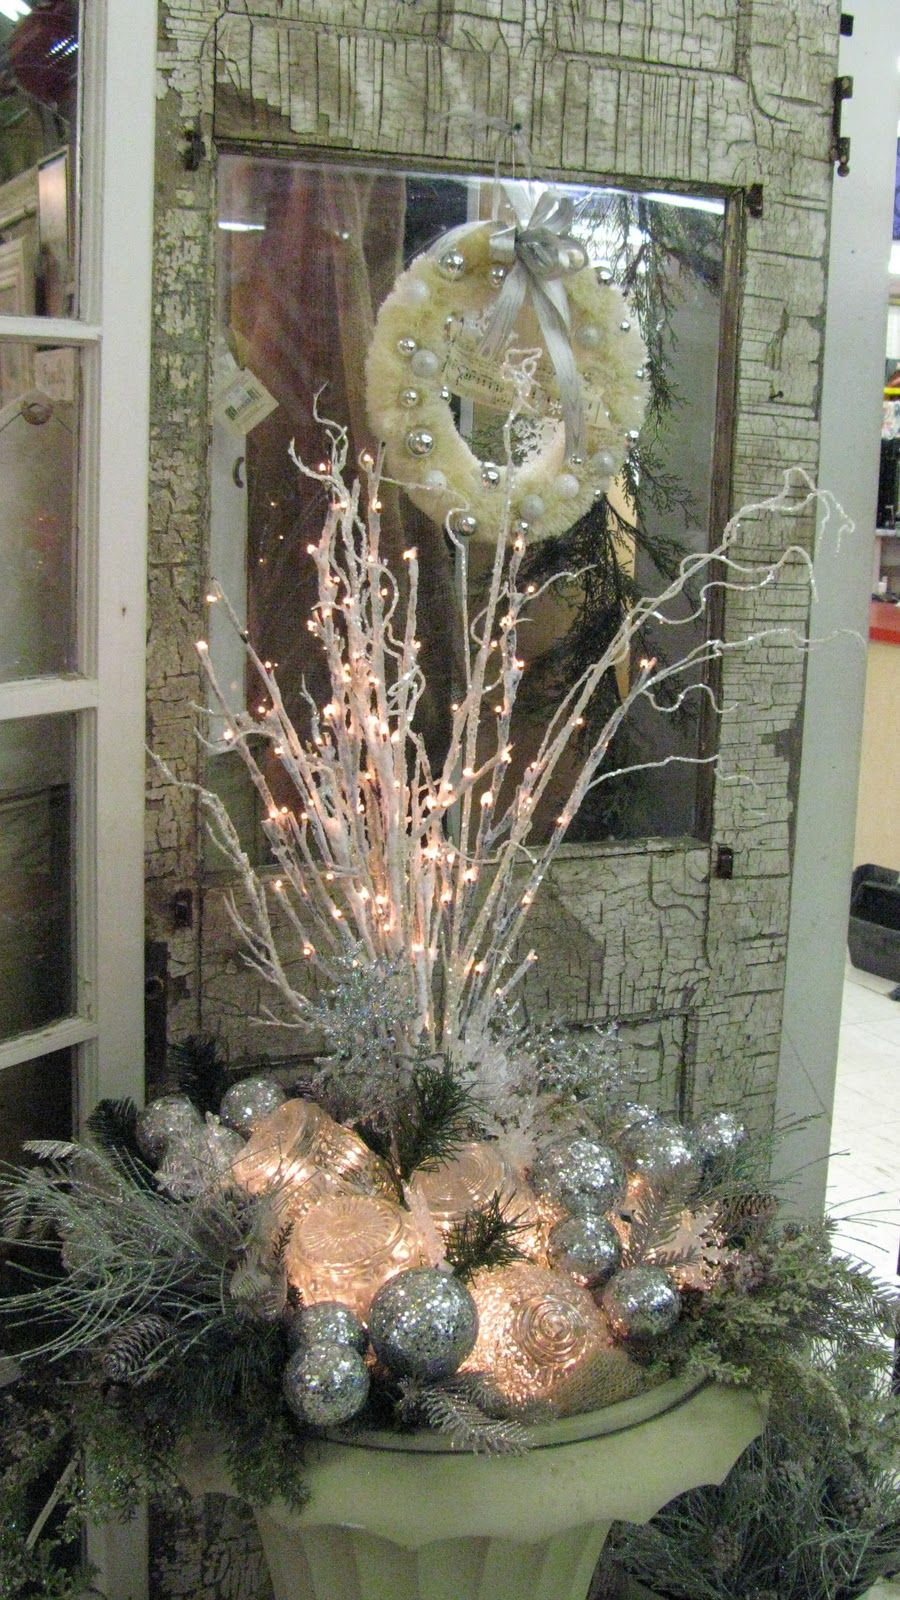 Outdoor garage decorations  Put on both sides of garage  Christmas  Pinterest  Christmas